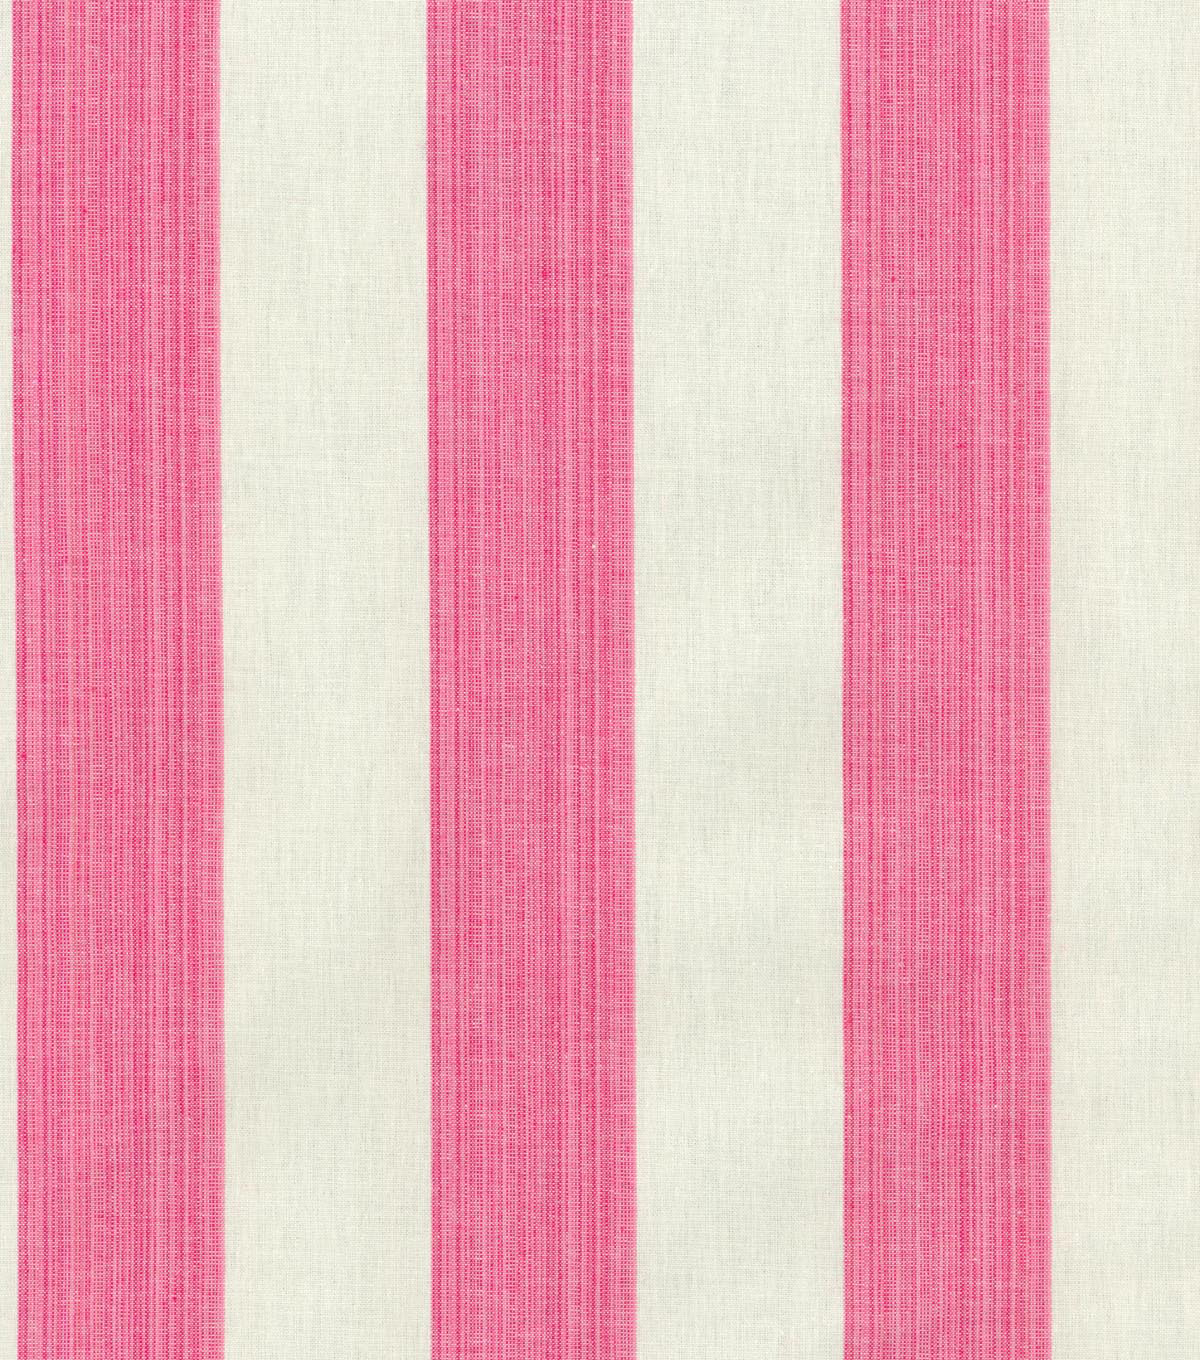 Home Decor 8\u0022x8\u0022 Swatch Fabric-Williamsburg Stratford Stripe Blossom